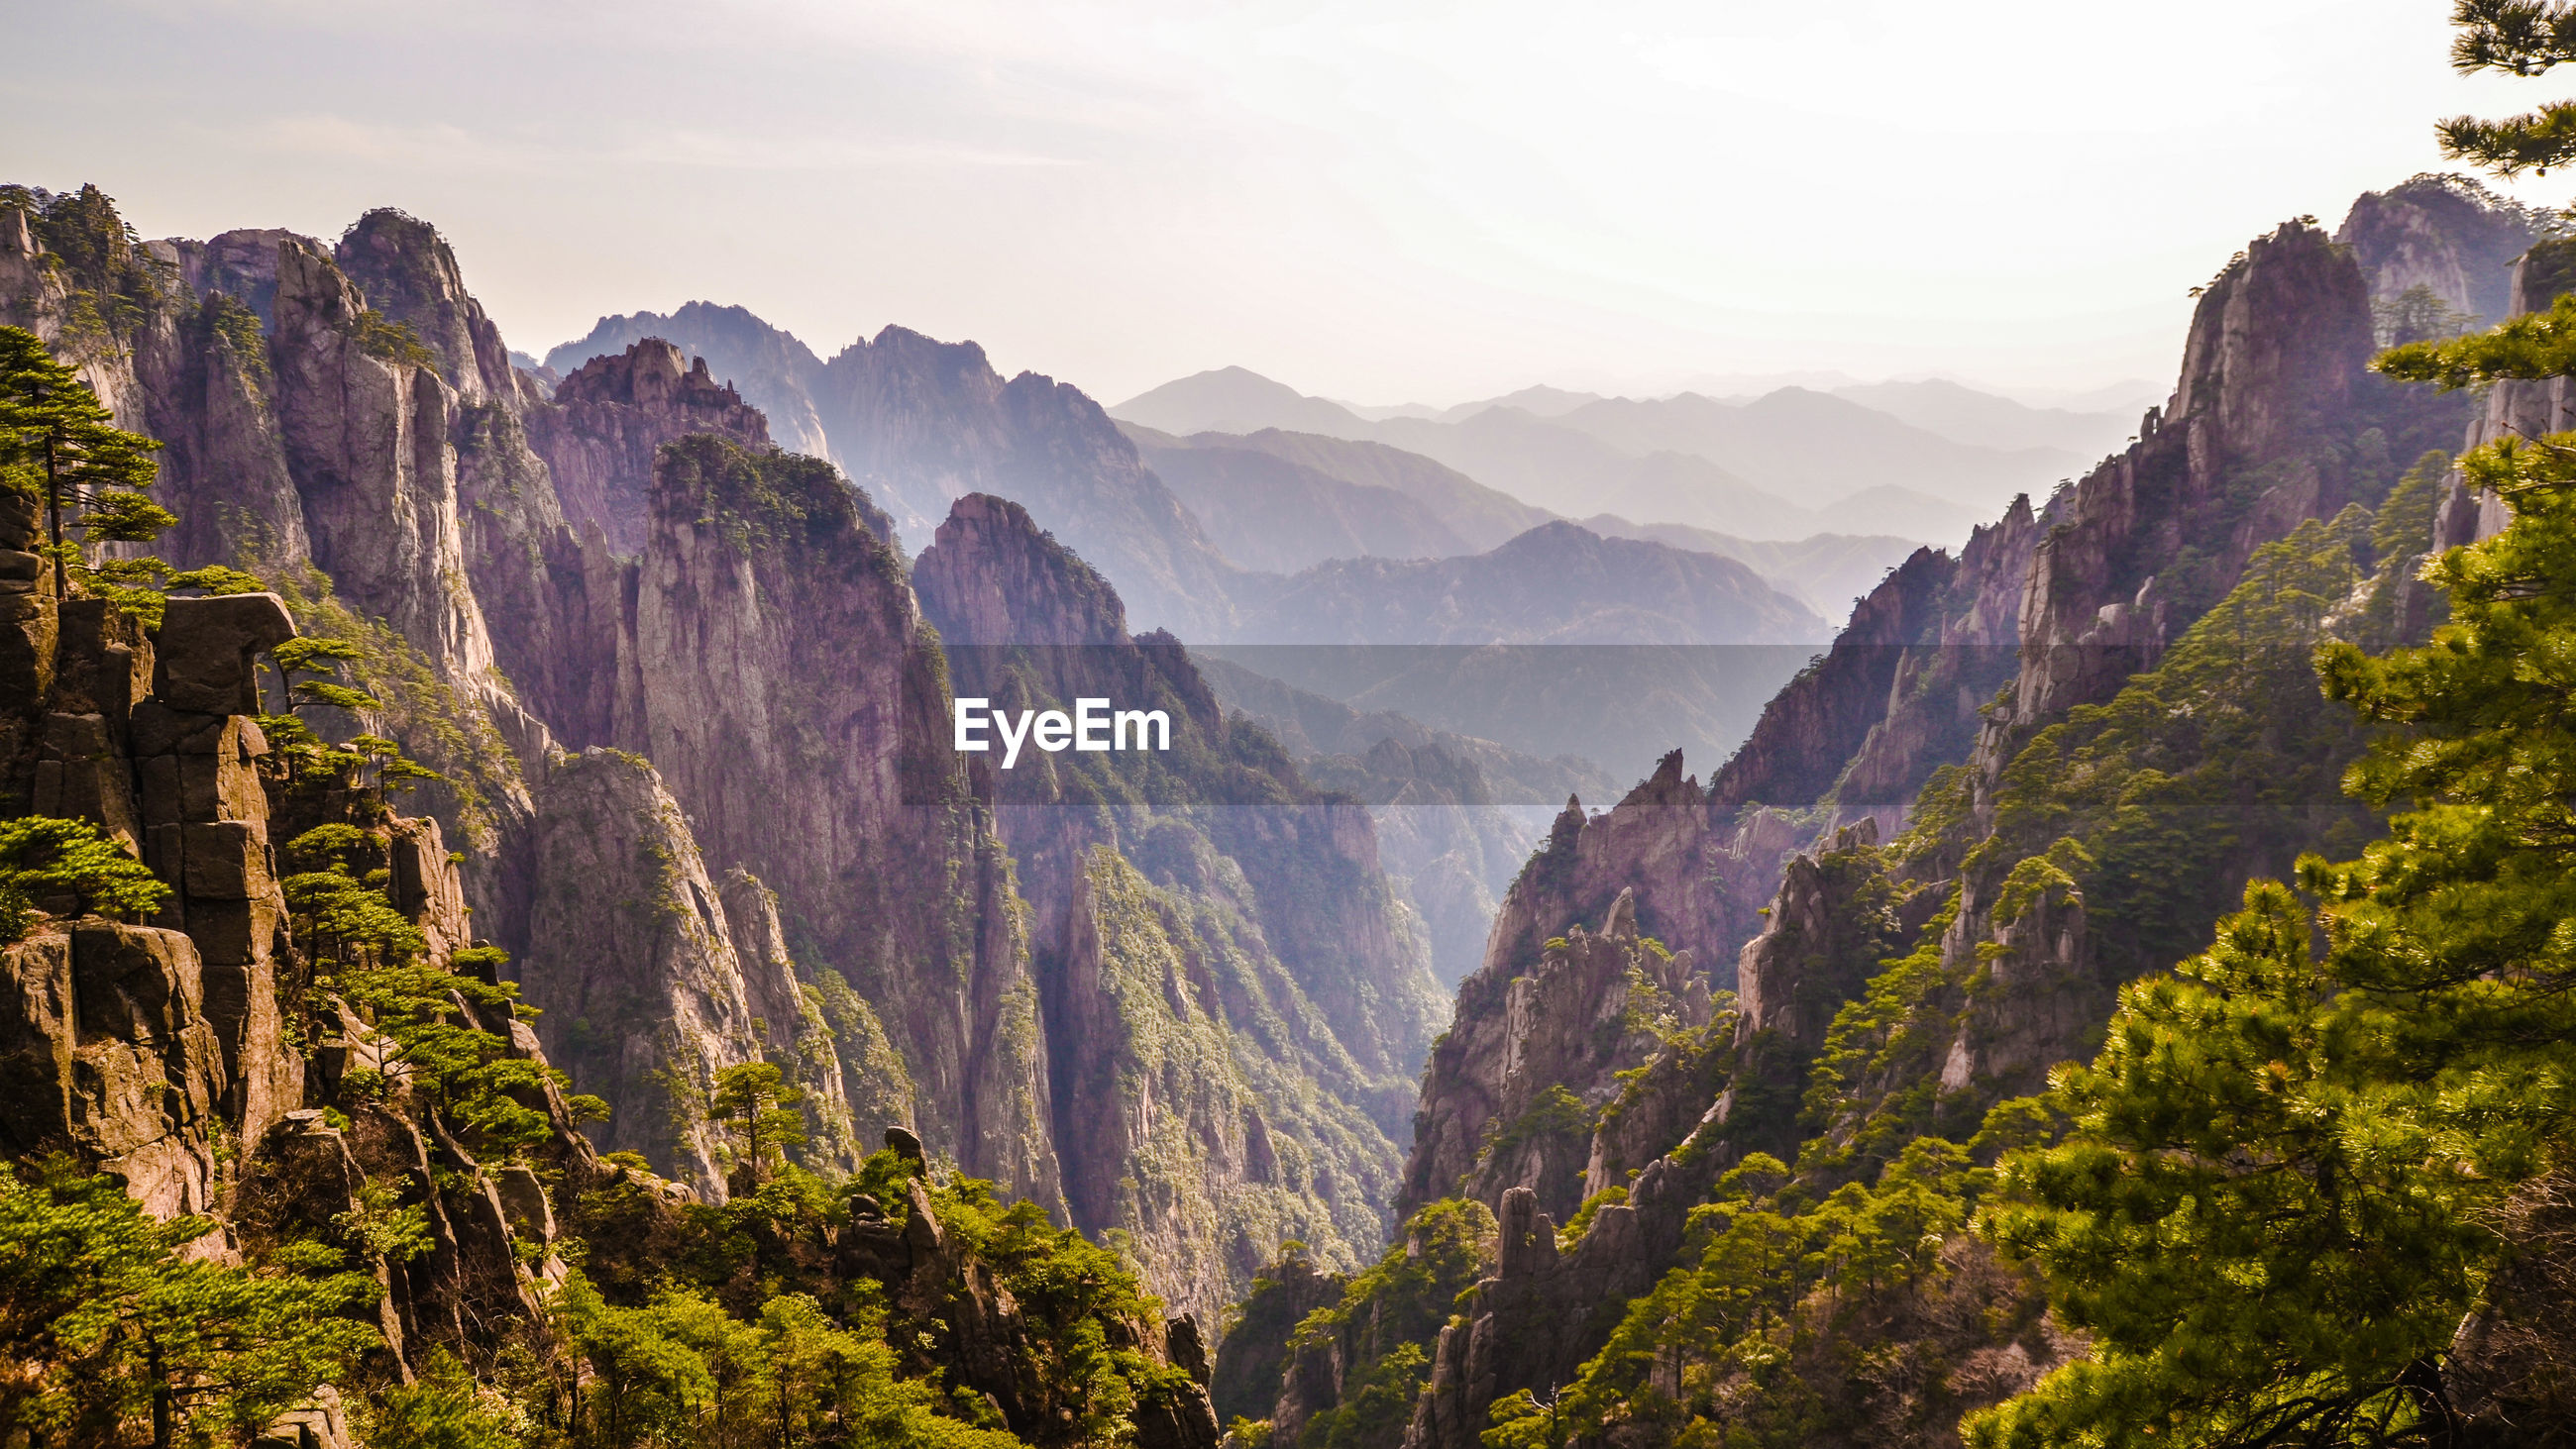 Scenic view of mountain ranges against sky